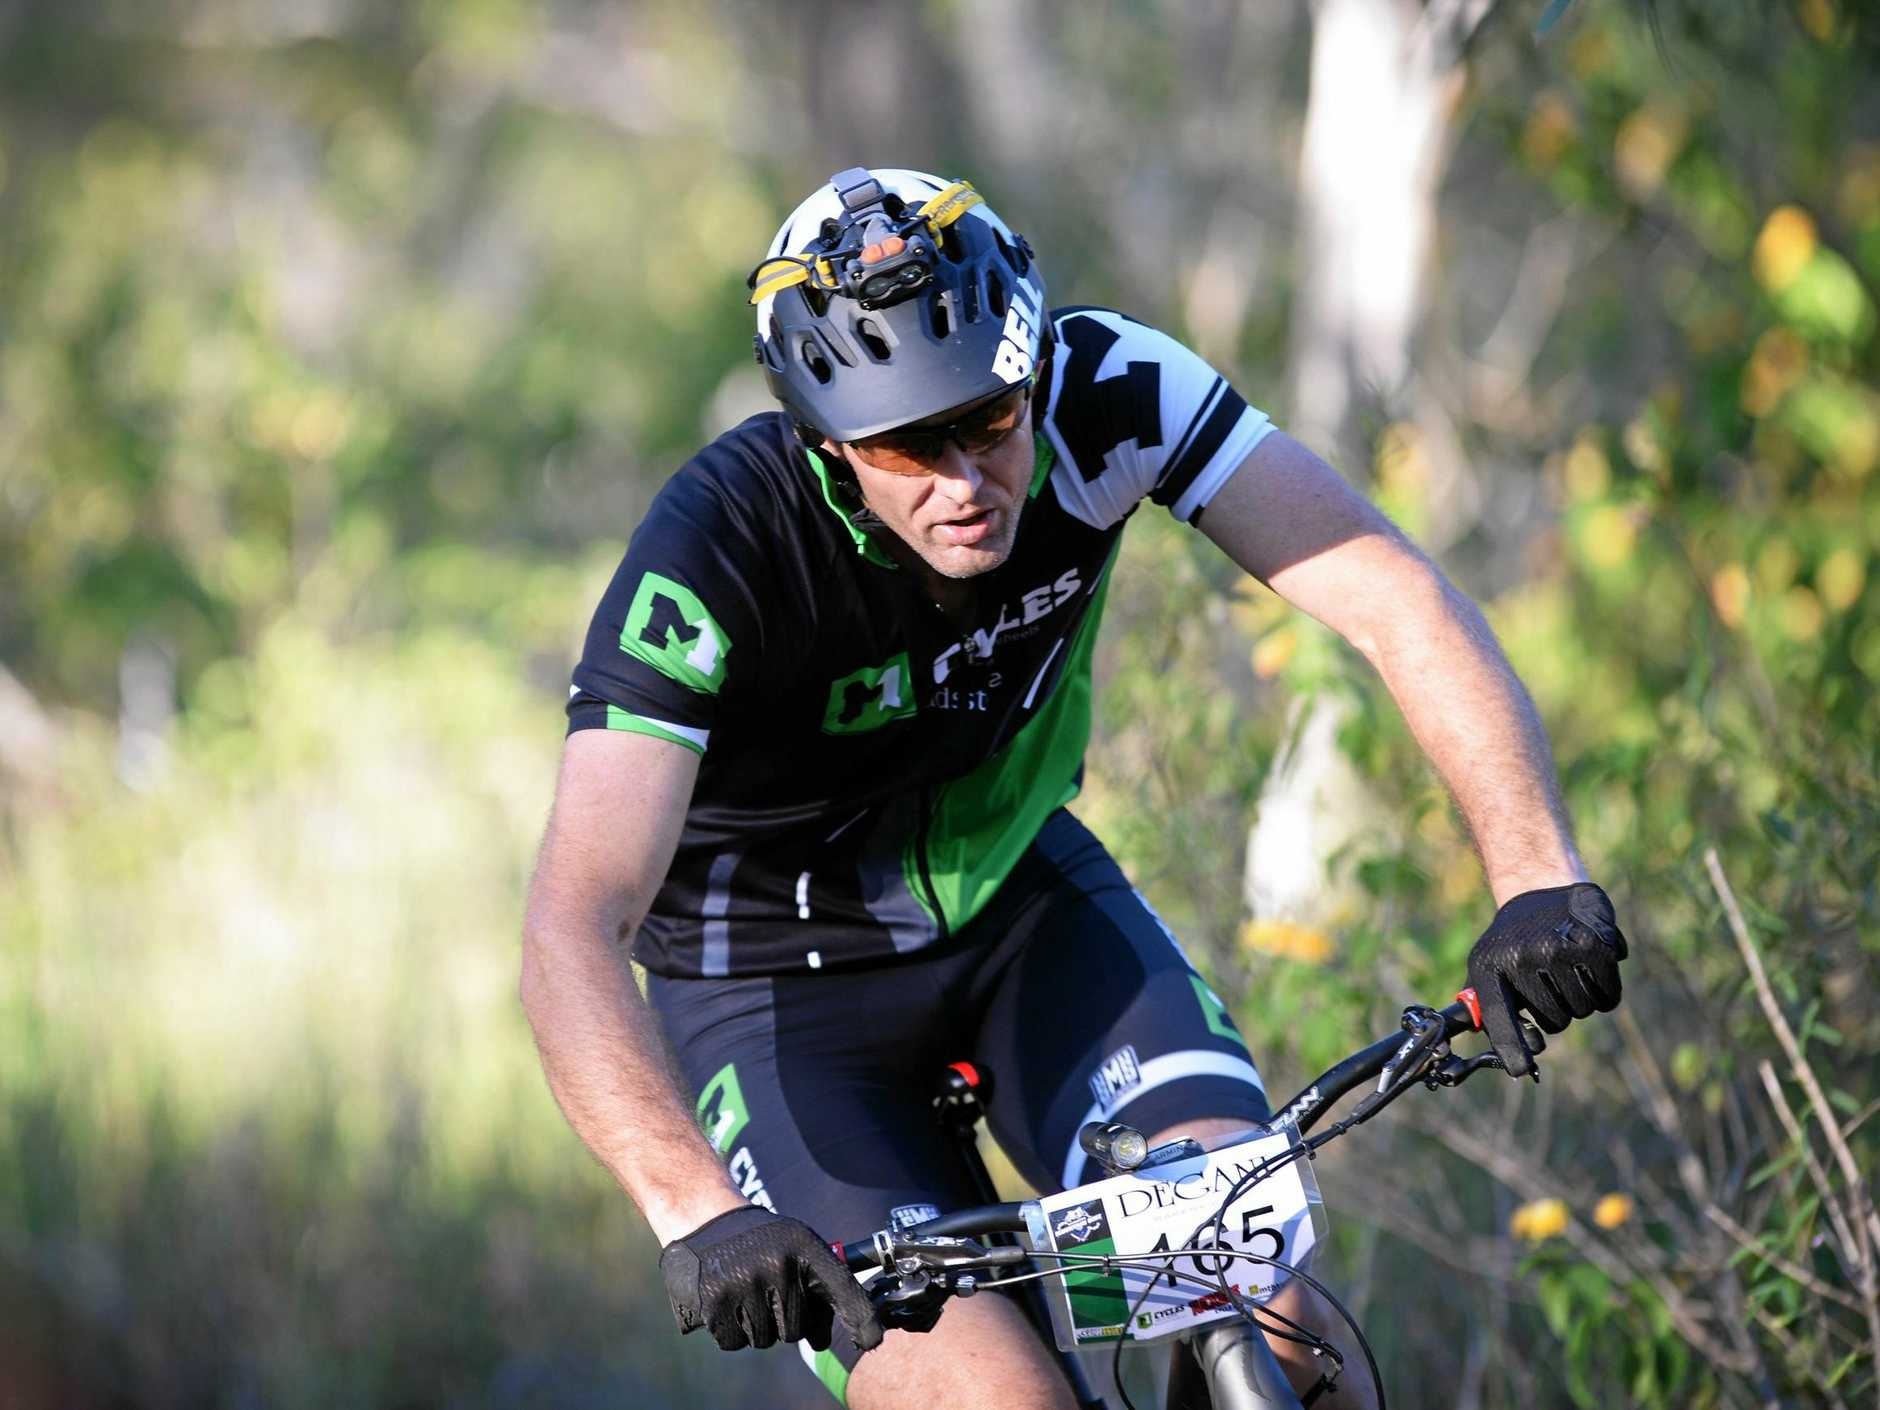 POWERING UP:   Grant Burkhardt will be among the Rockhampton riders taking on the three-hour cross country event at Seeonee Park on Saturday.